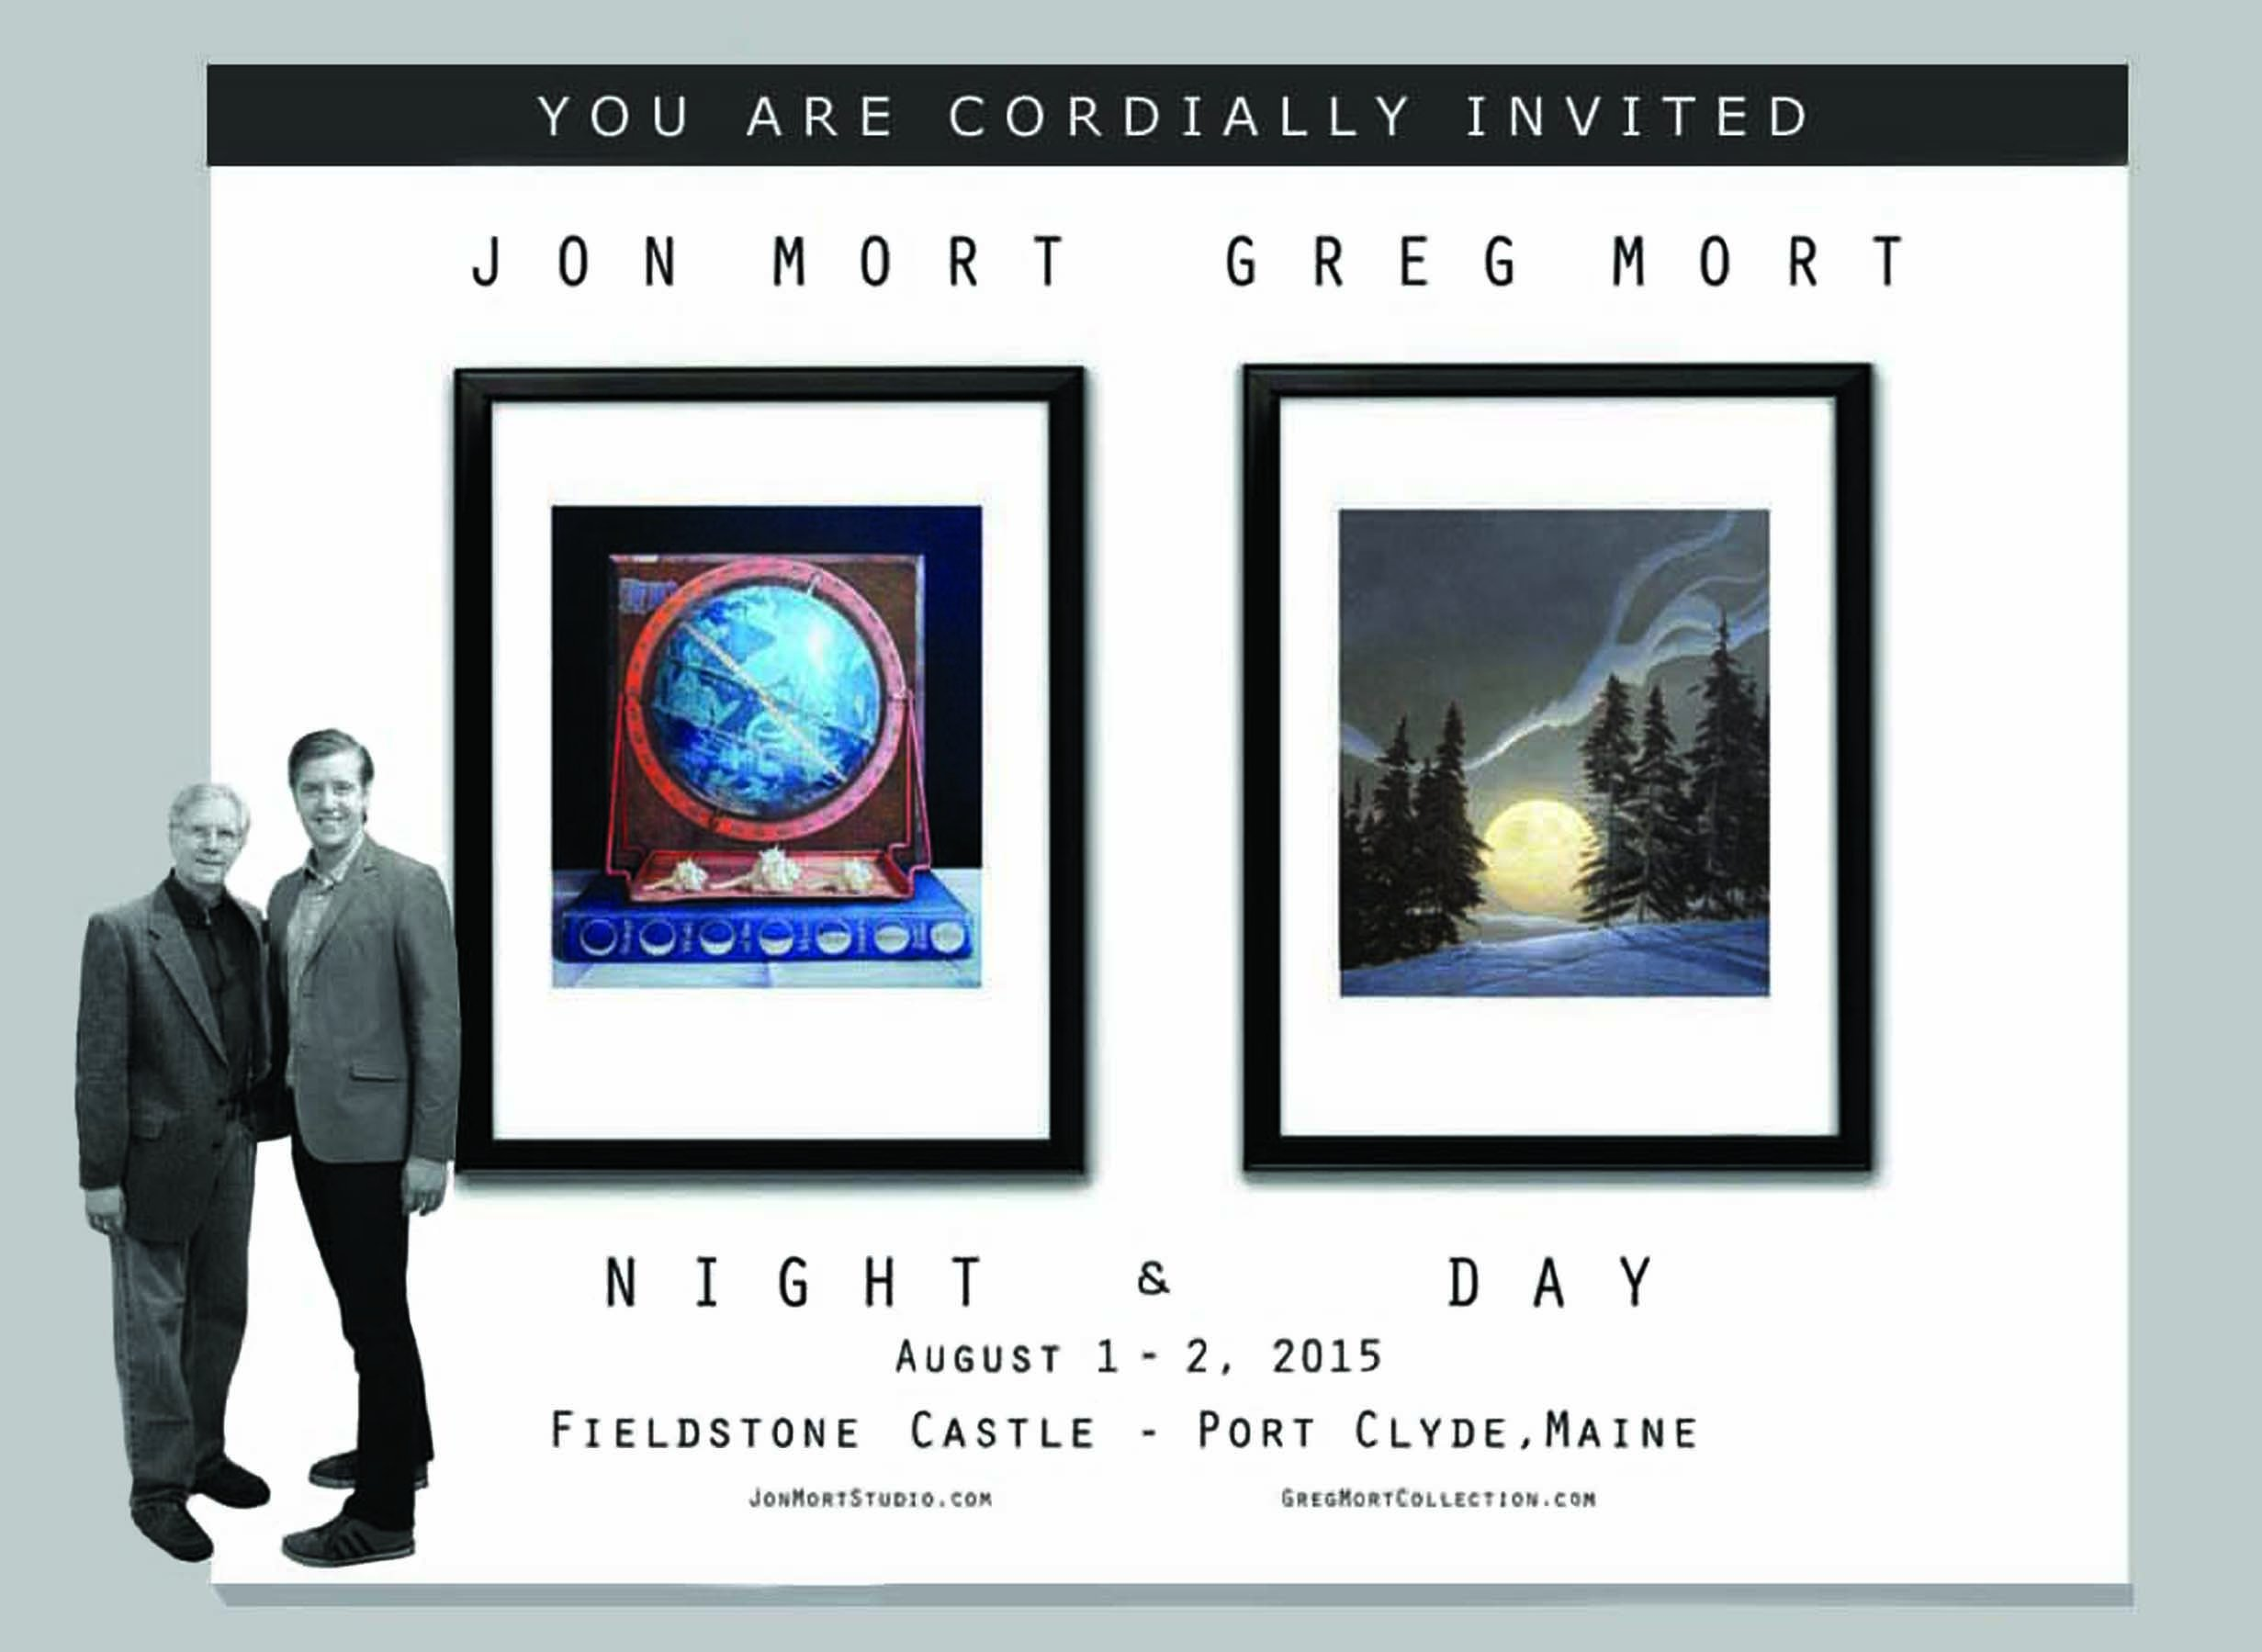 Greg Mort and Jon Mort NIGHT & DAY Open Studio August 1 & 2, 2015 in Port Clyde, Maine